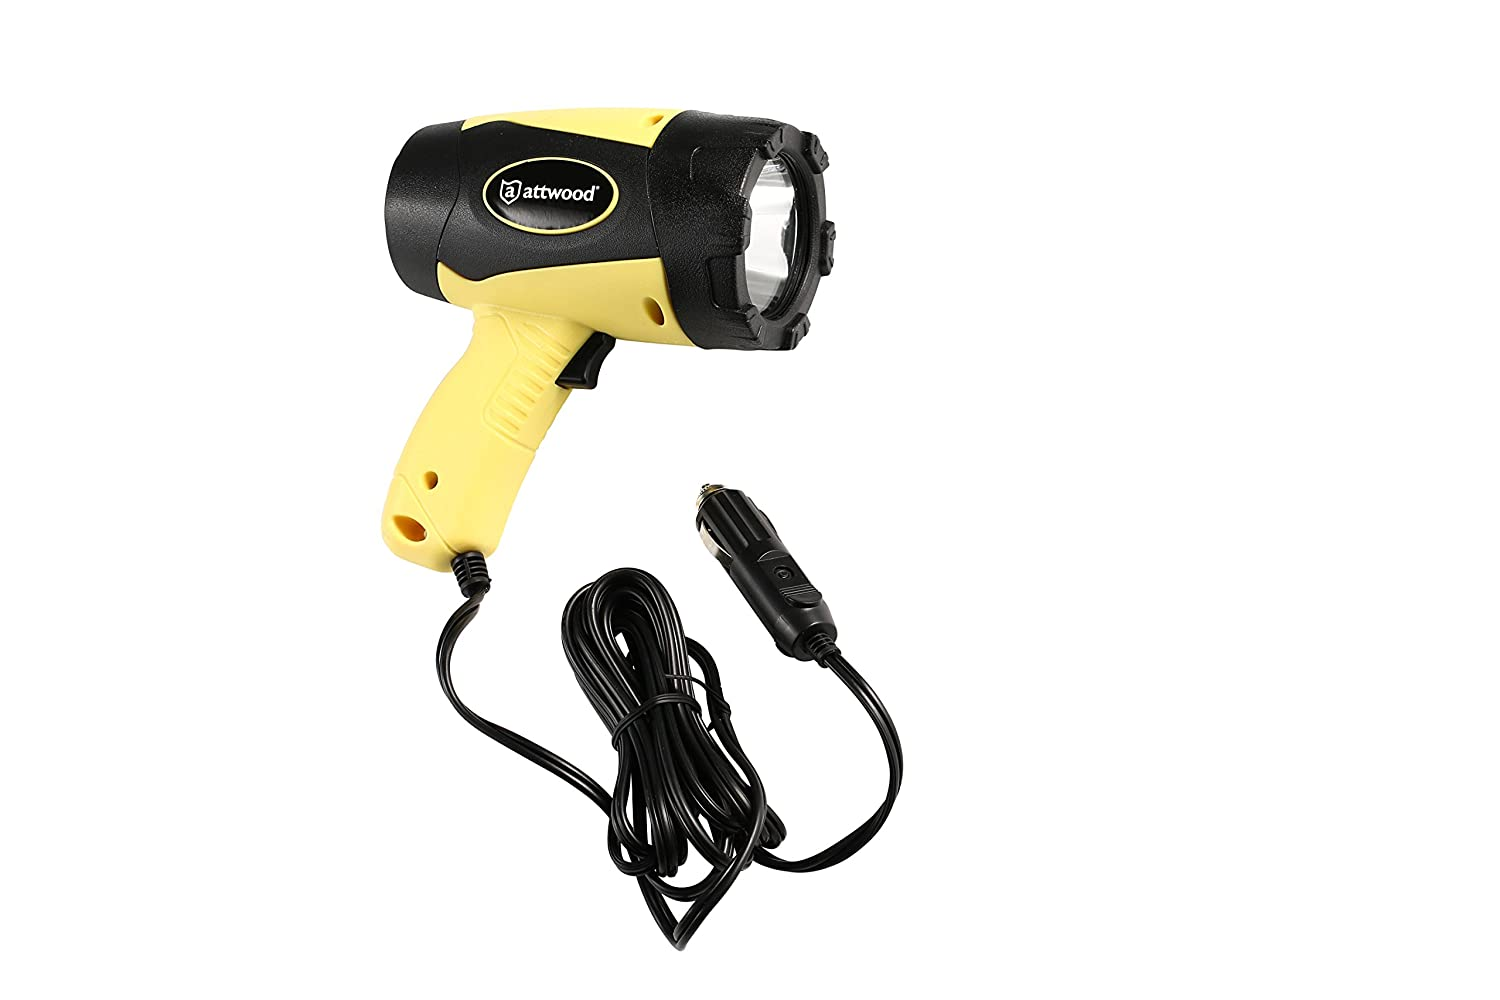 400 Lumens 12V 11794-7 Attwood Handheld Spotlight